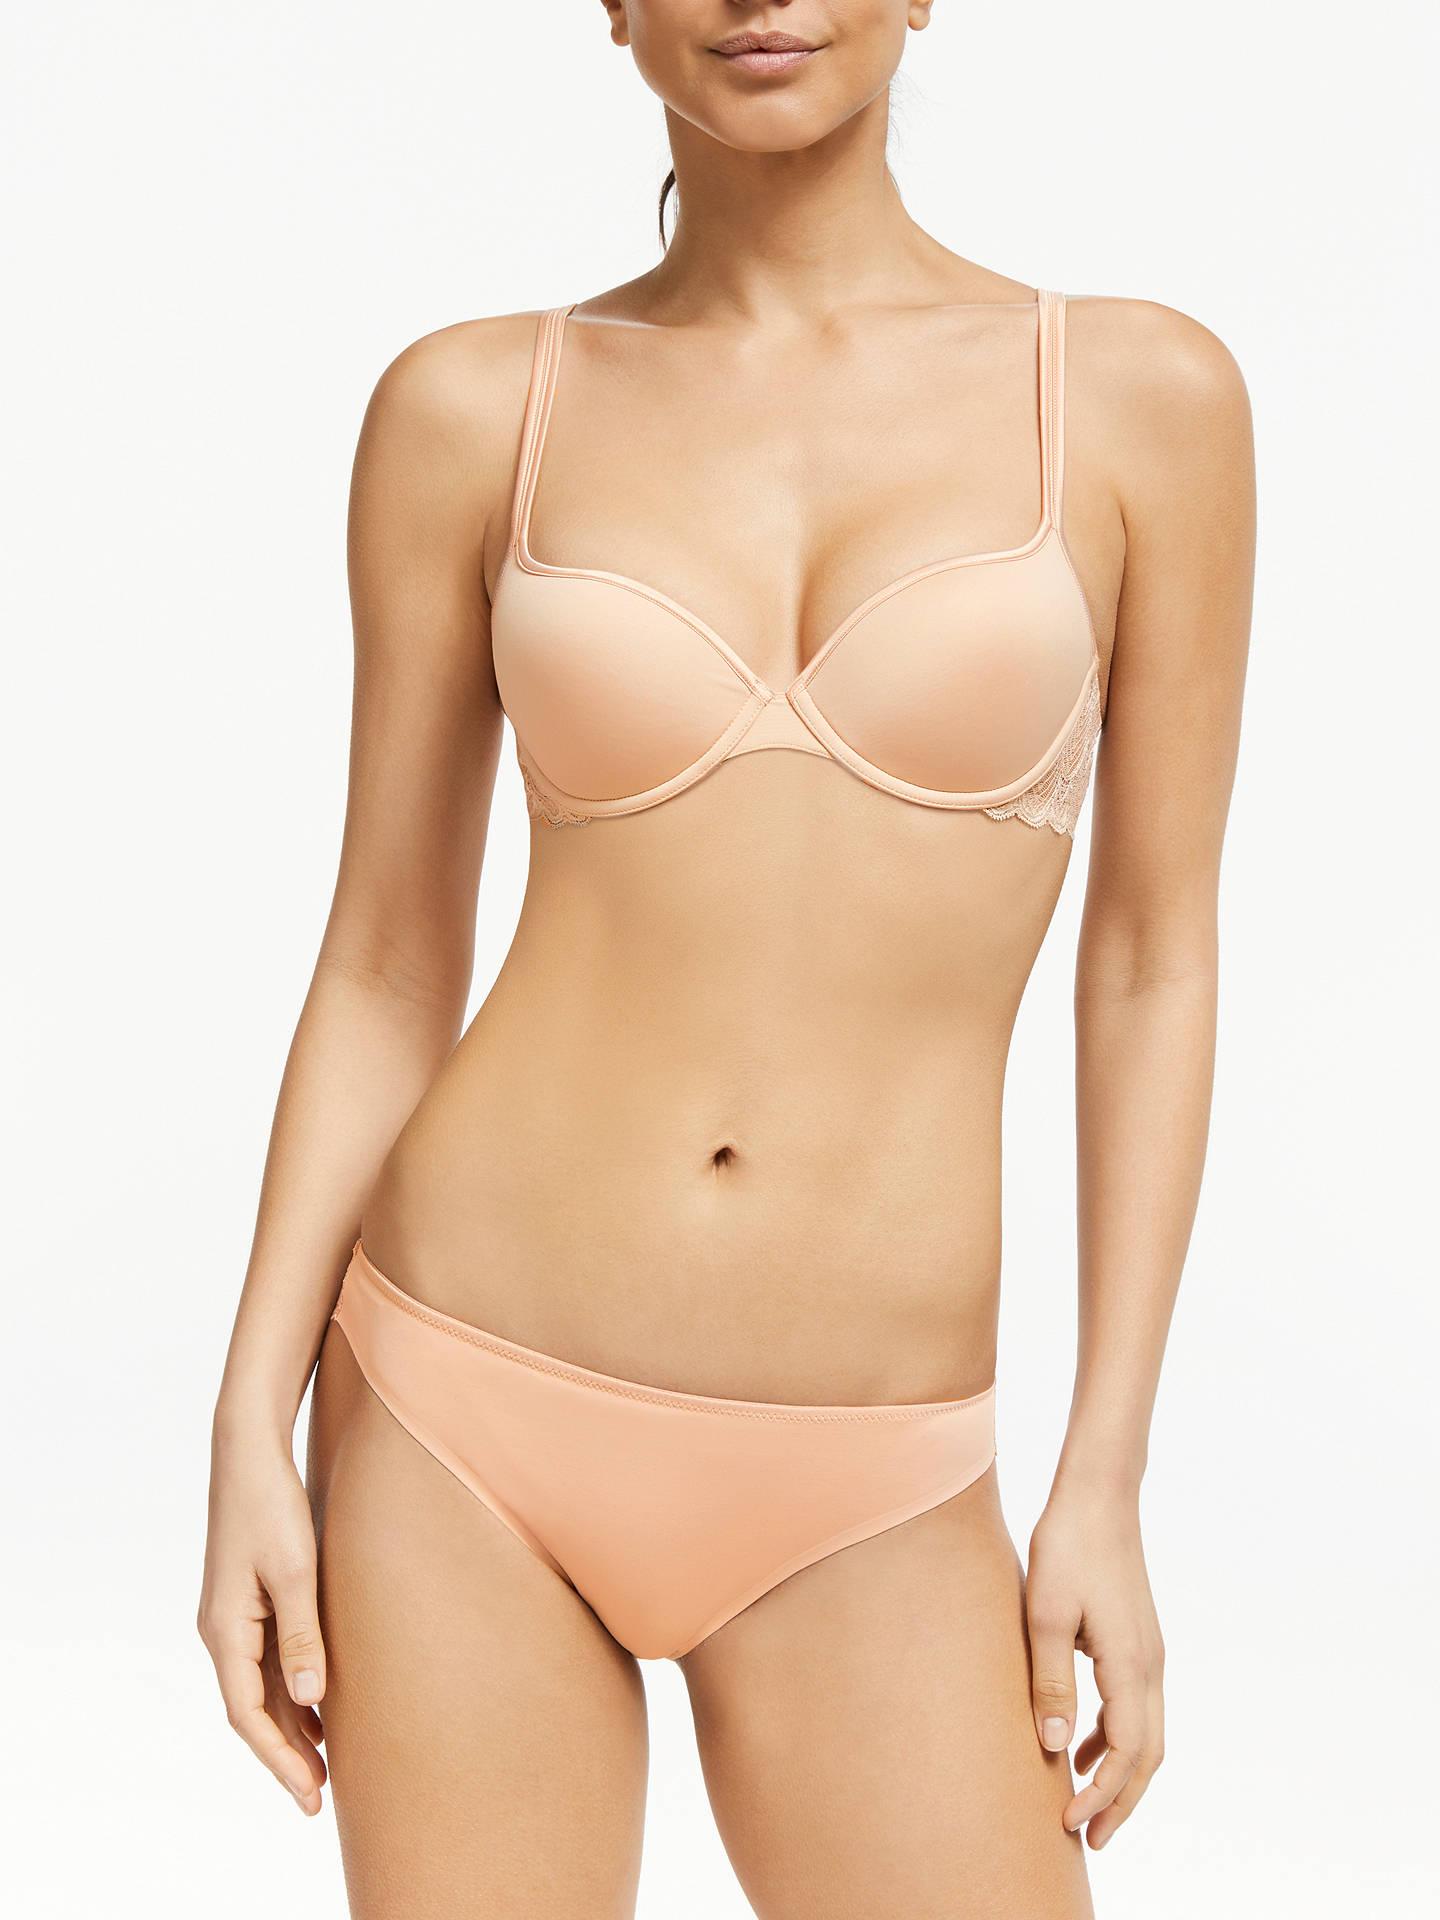 BuyJohn Lewis & Partners Eleanor T-Shirt Bra, Nude, 30D Online at johnlewis.com